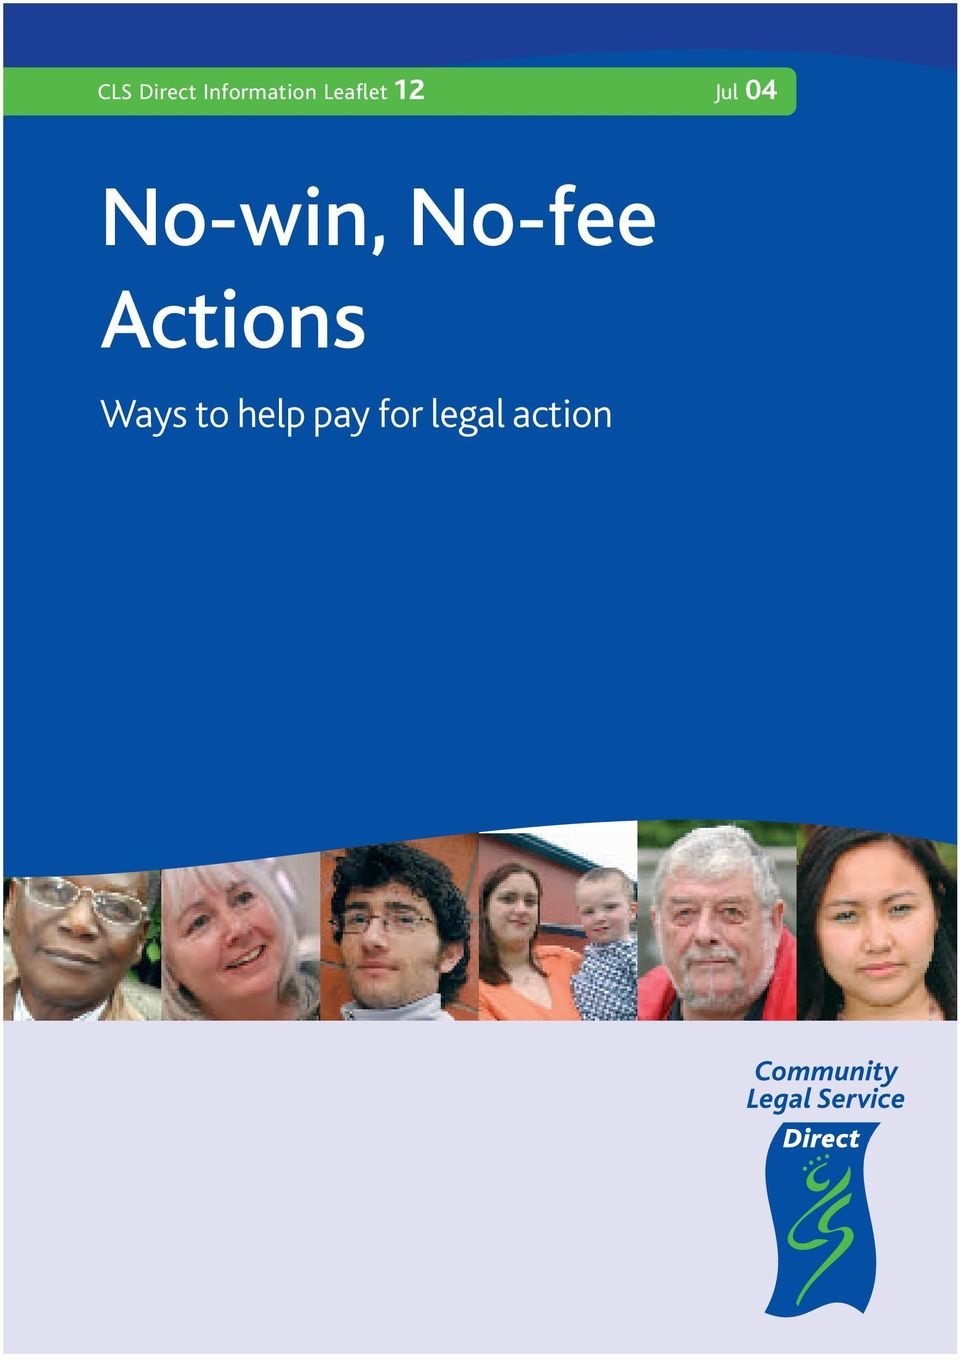 No-win, No-fee Actions